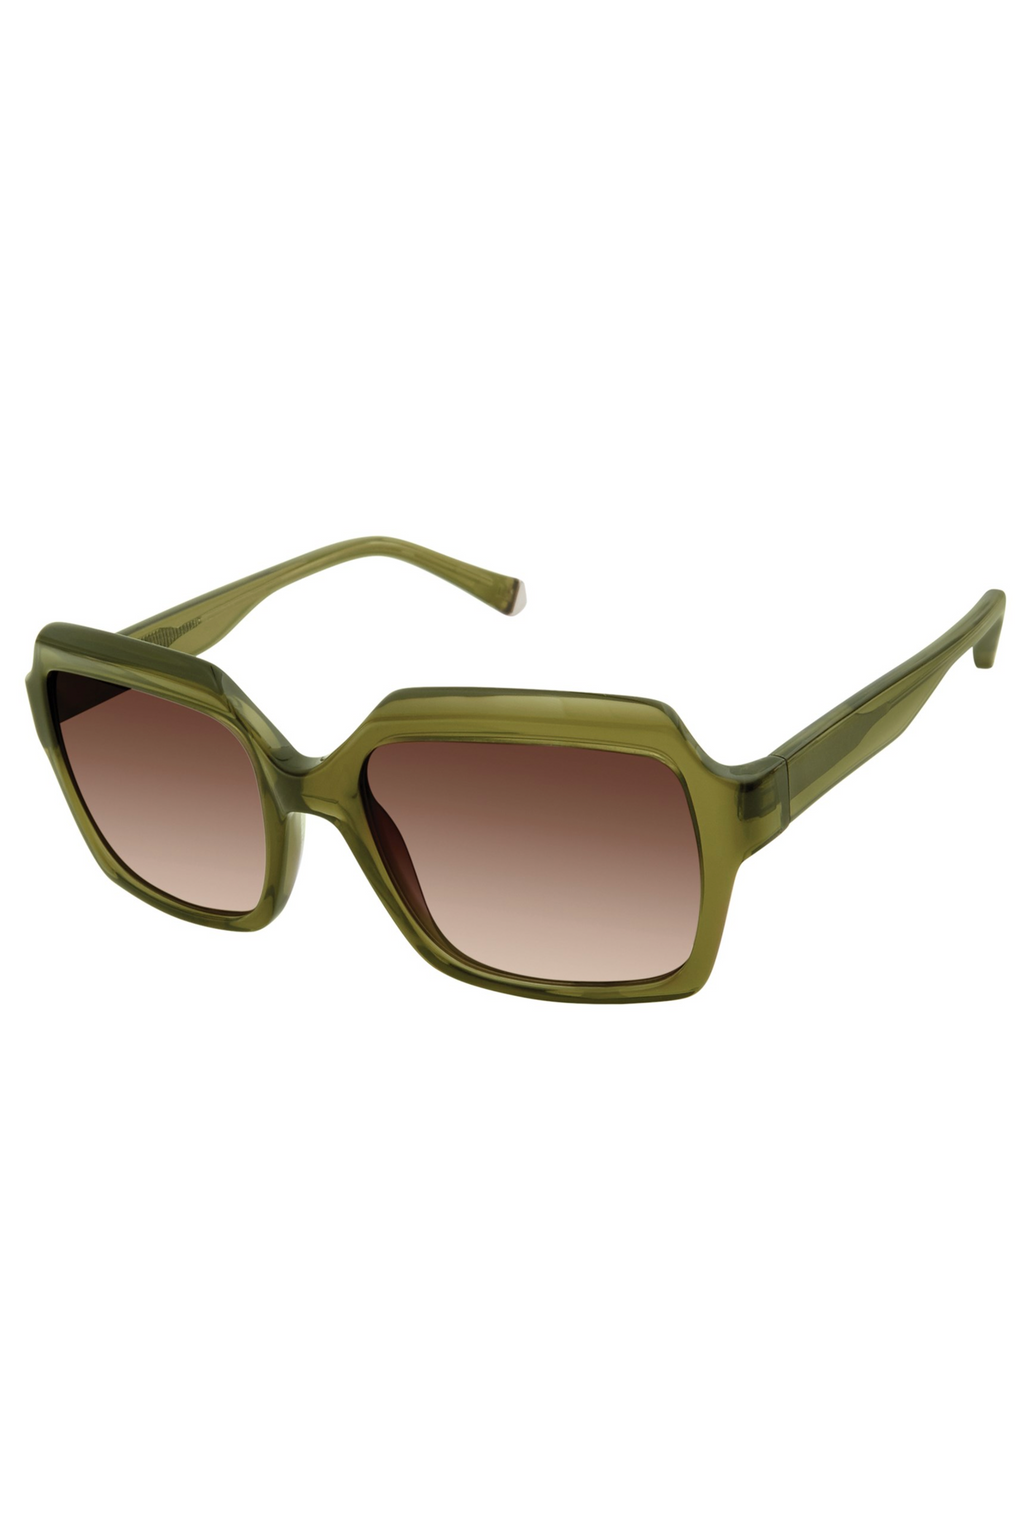 "Kate Young For Tura ""Toni"" Sunglasses in Khaki"